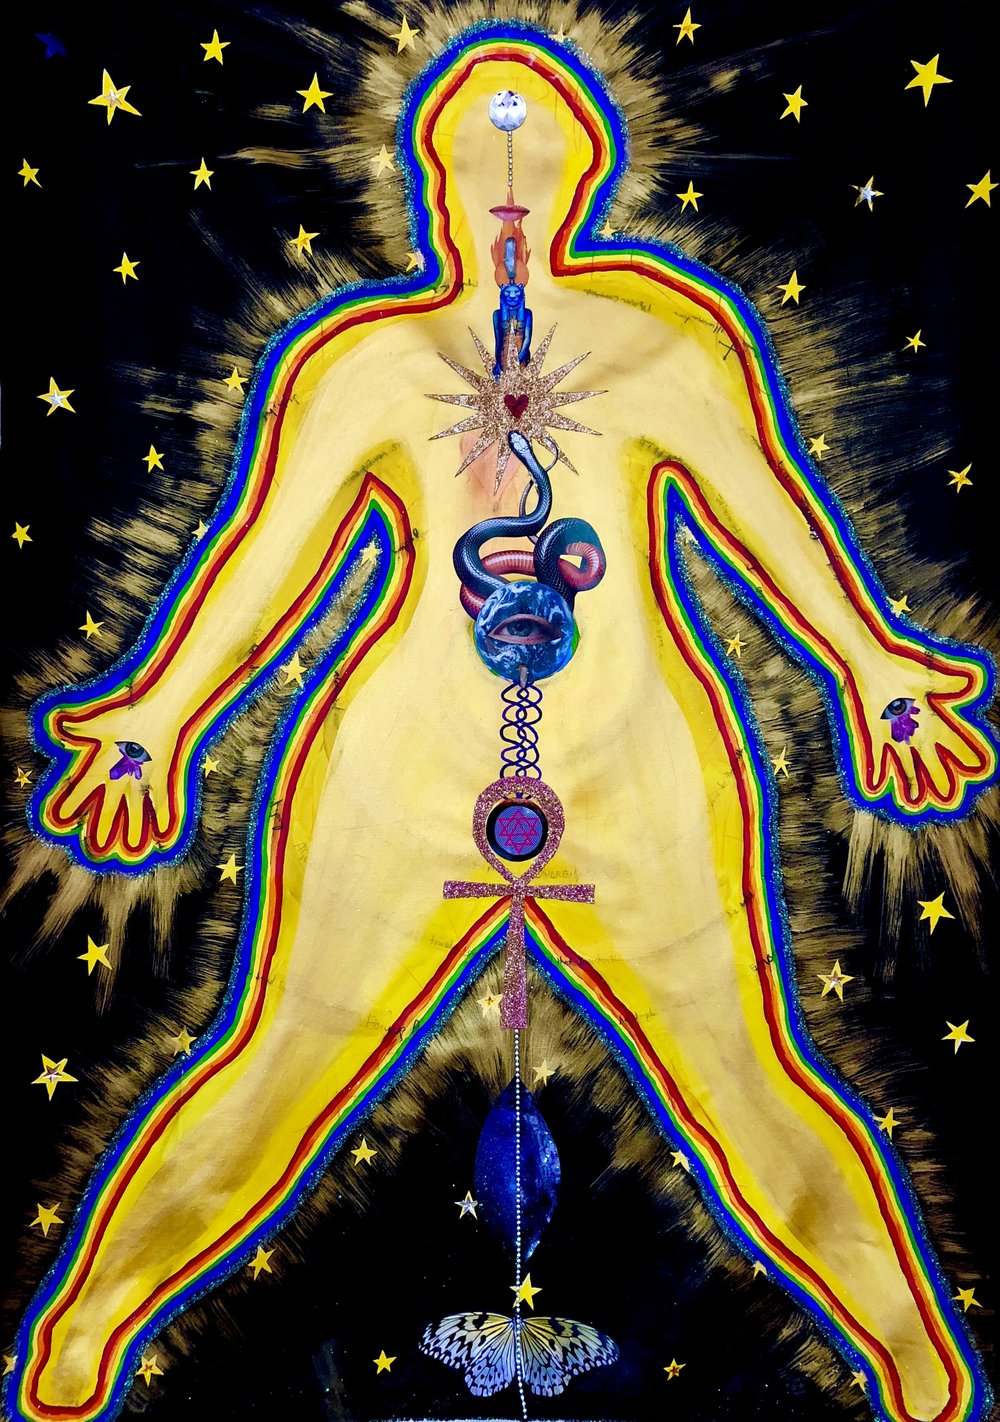 5 foot mixed media Shamanic Healing he(art) work